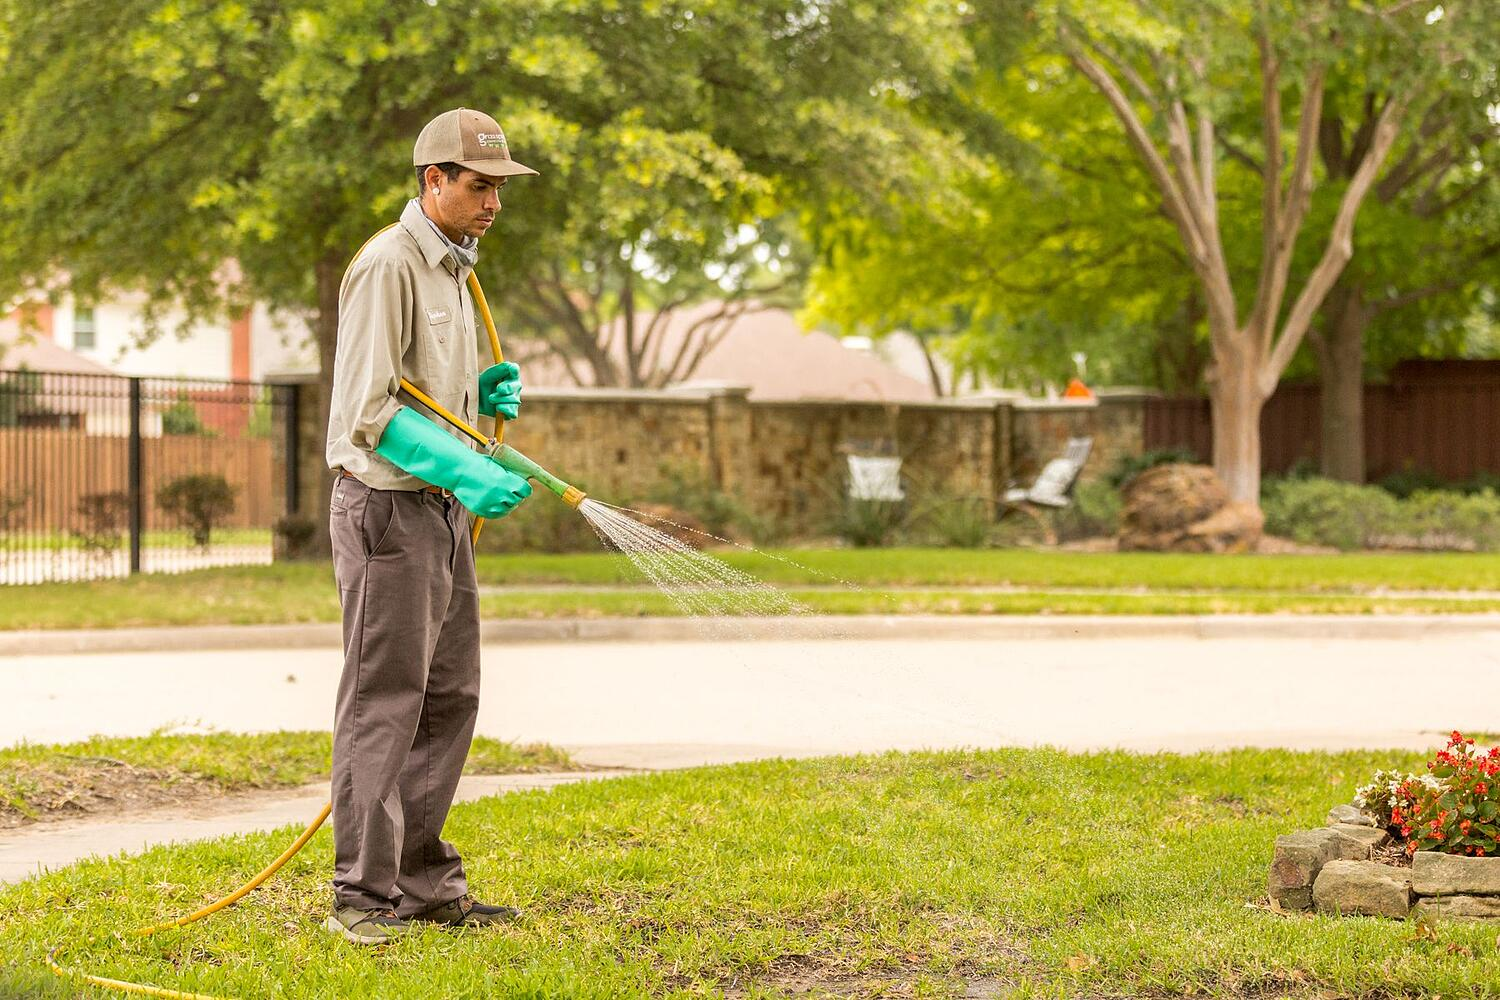 Lawn care company employee treating grass